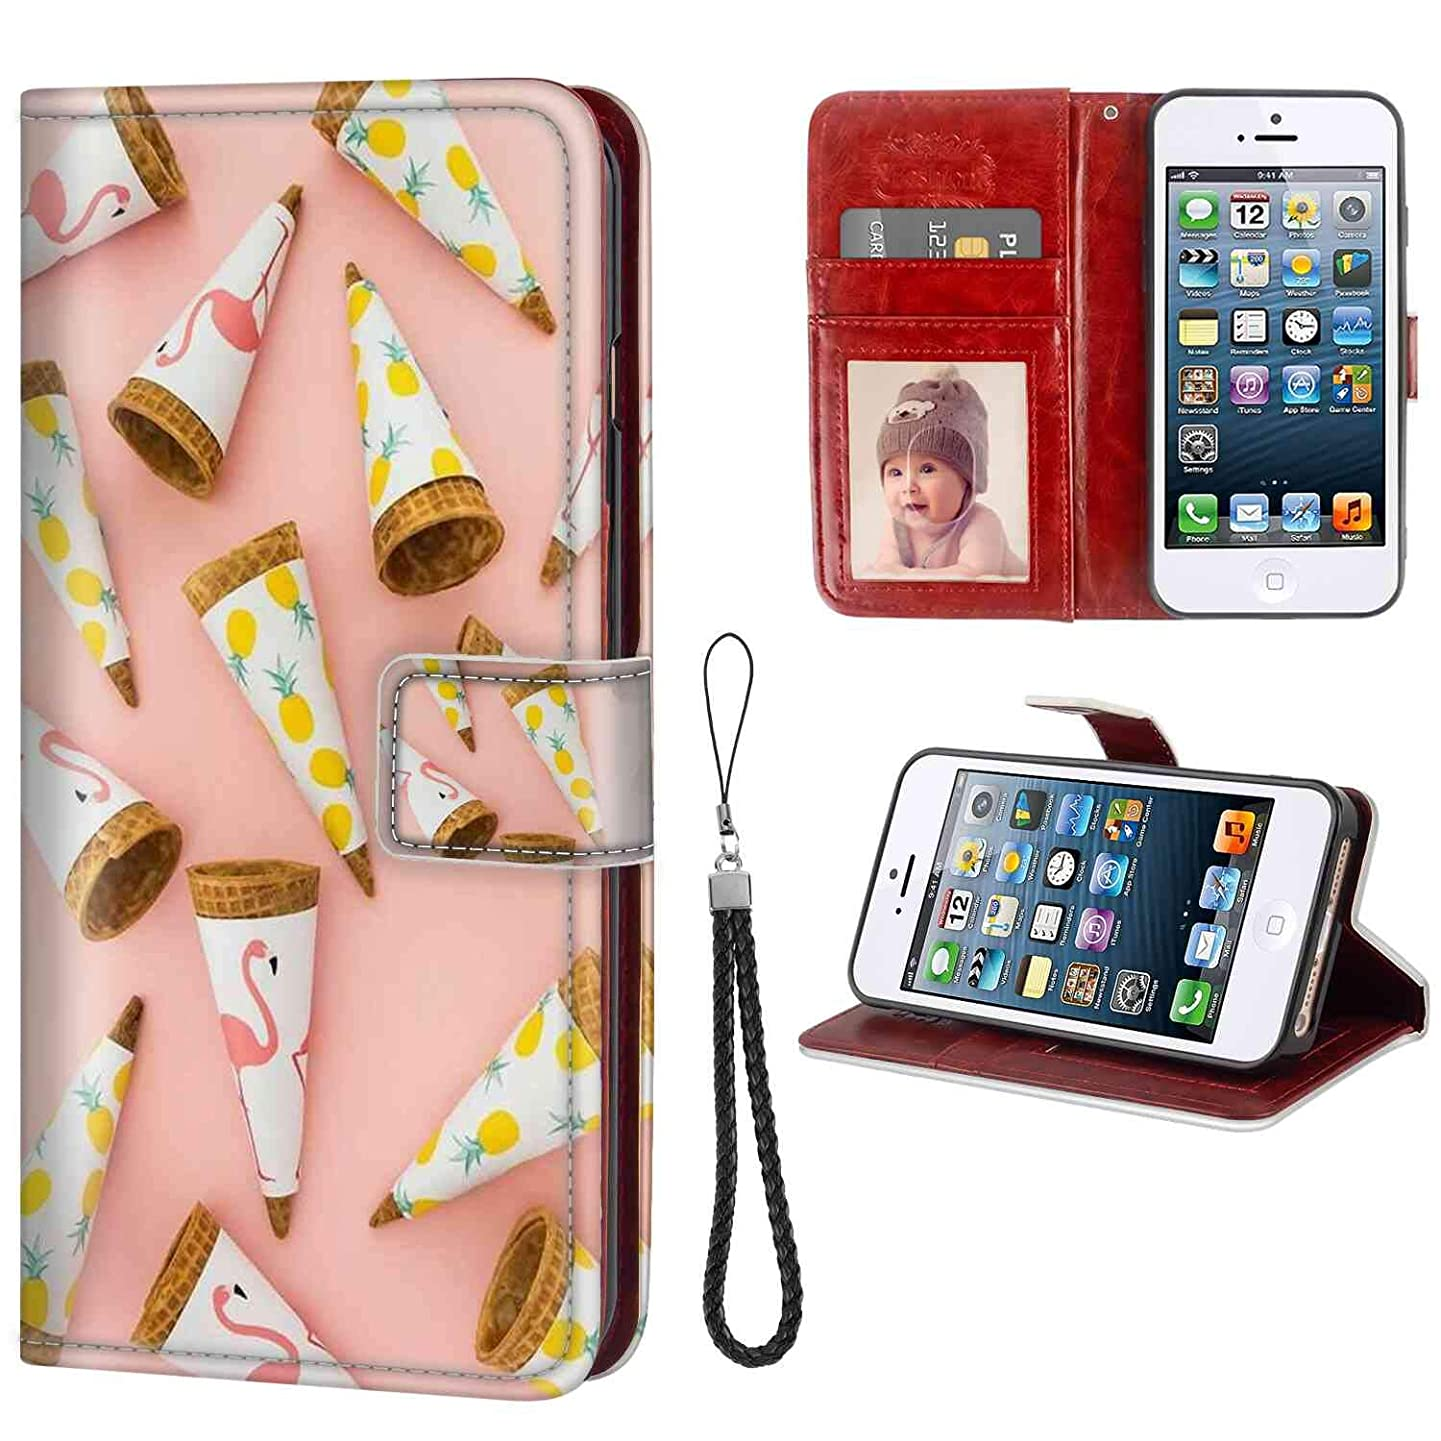 Phone Wallet Case for Apple iPhone 5 (2012), iPhone SE (2016), iPhone 5S (2013) 5.5in Sweet Tube Protective fudaheqcrmhr